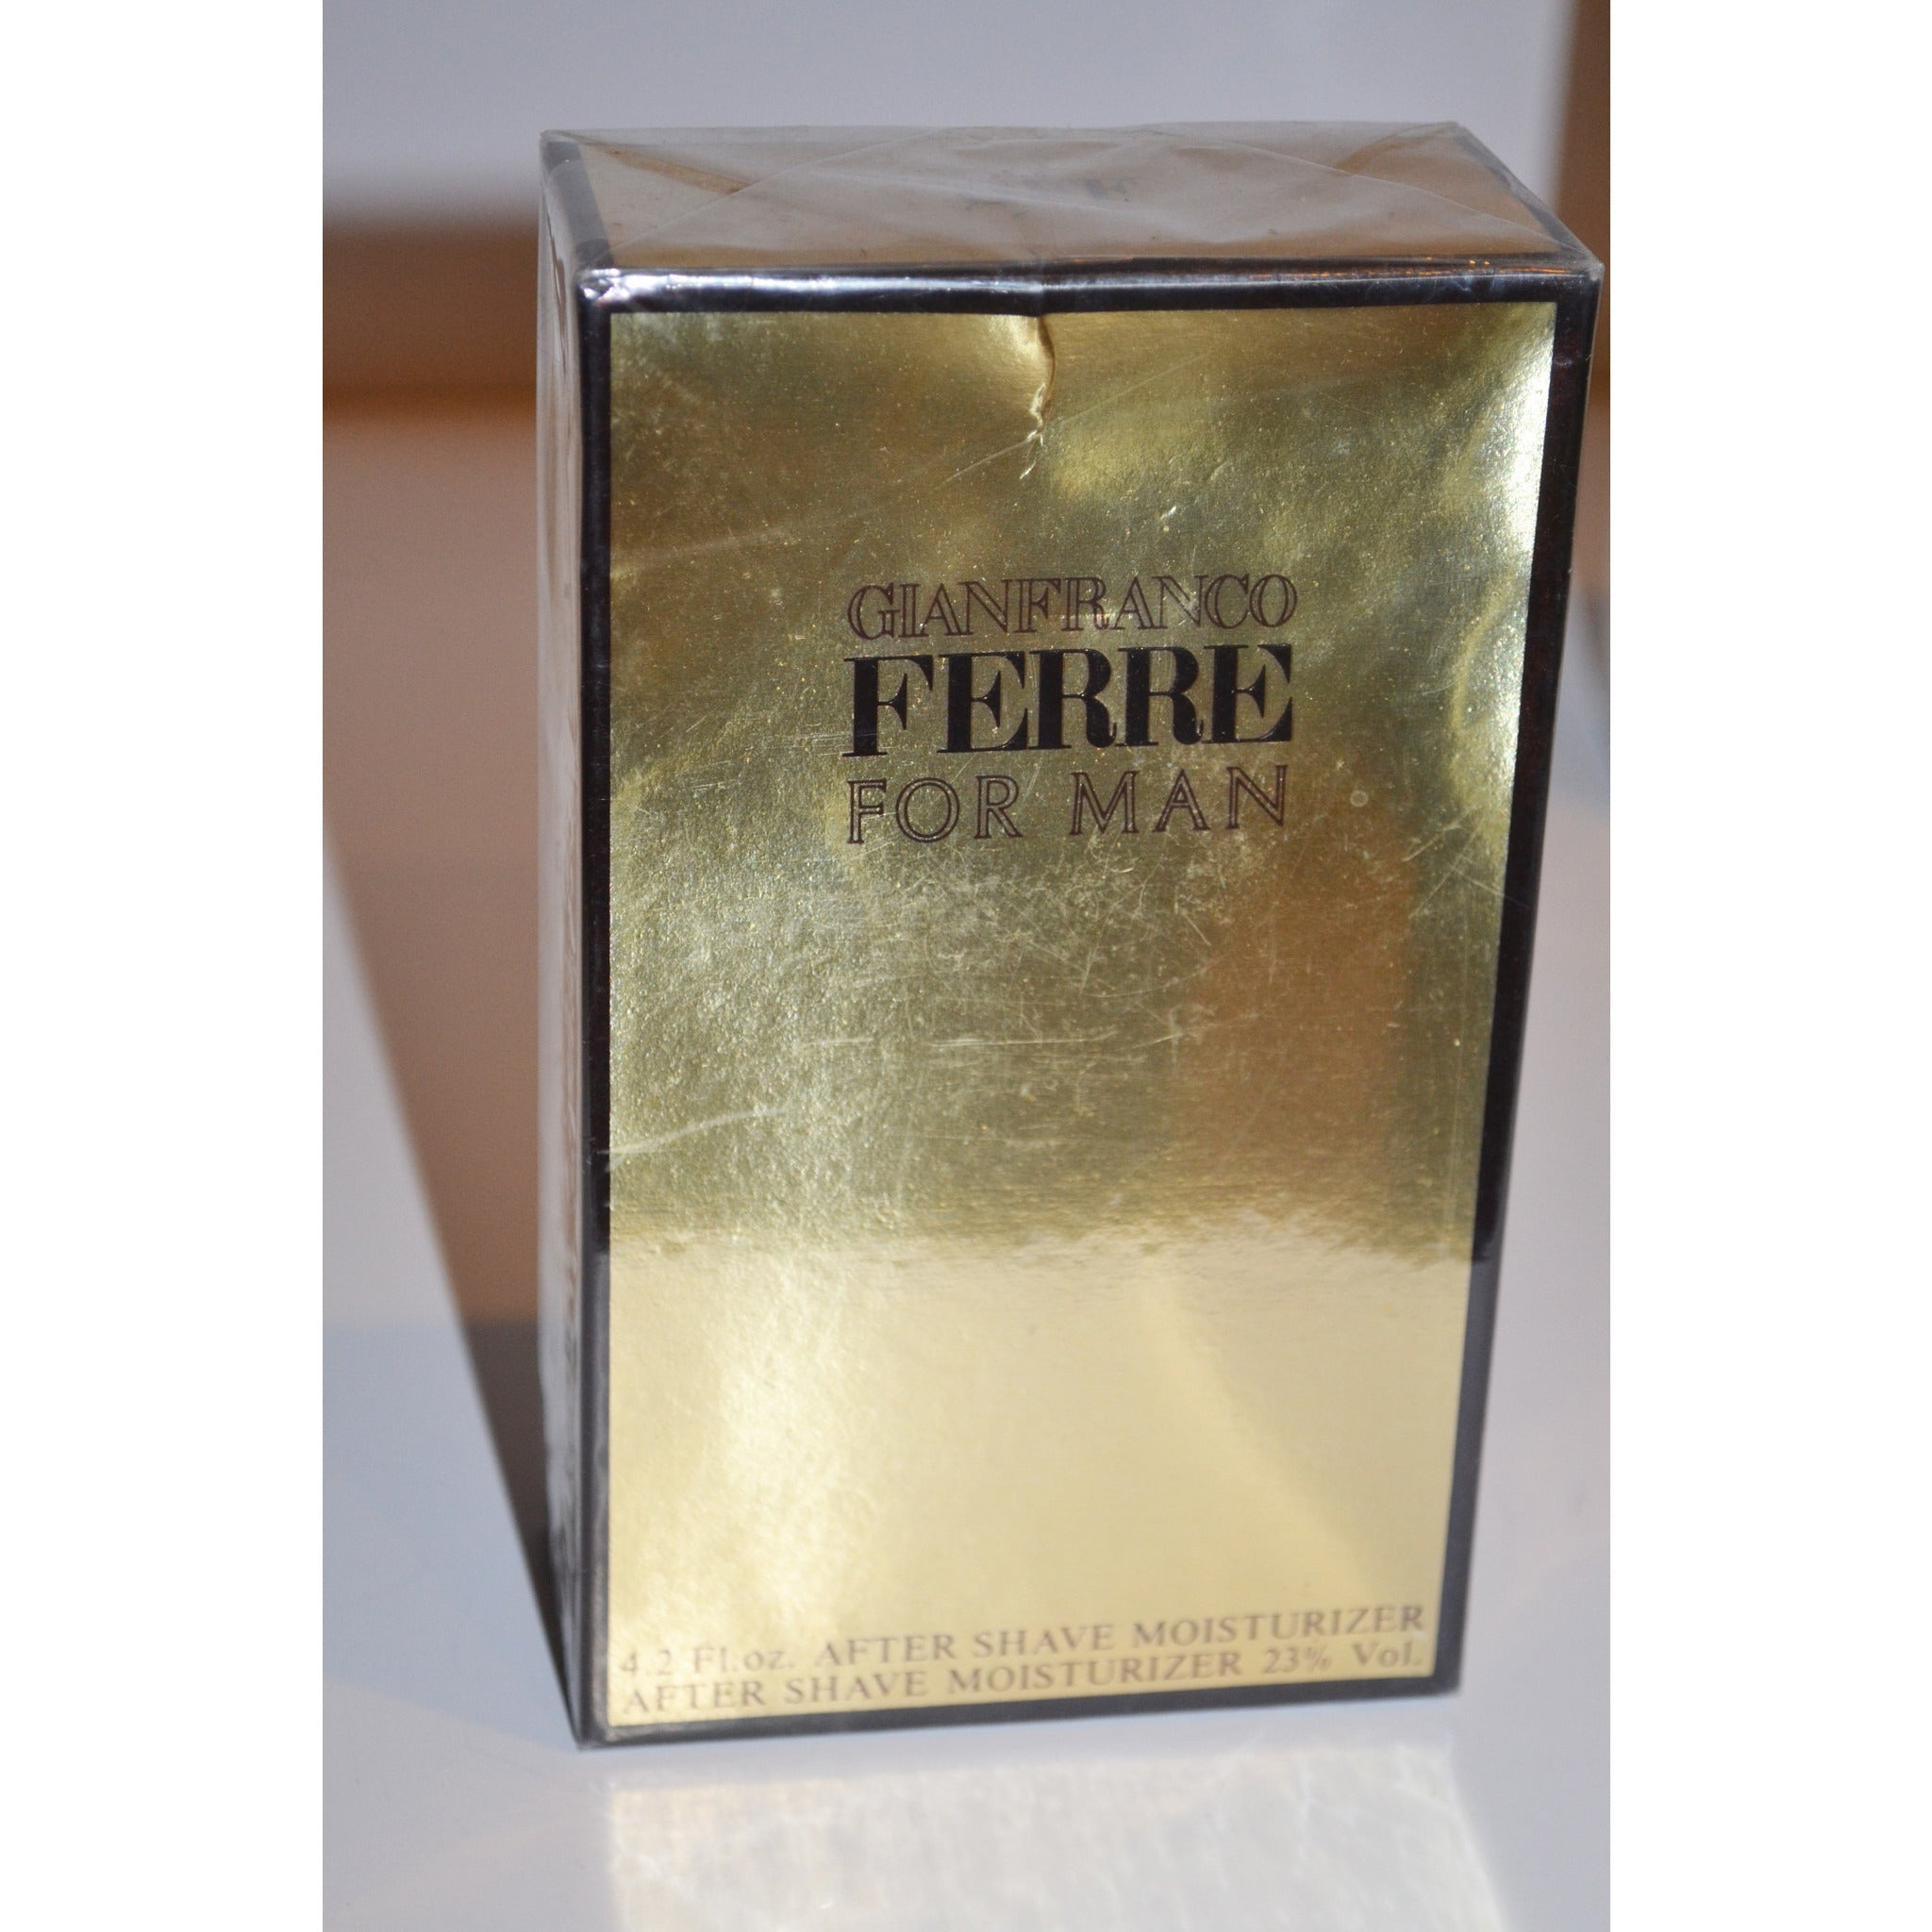 Vintage Ferre After Shave Moisturizer By Gianfranco